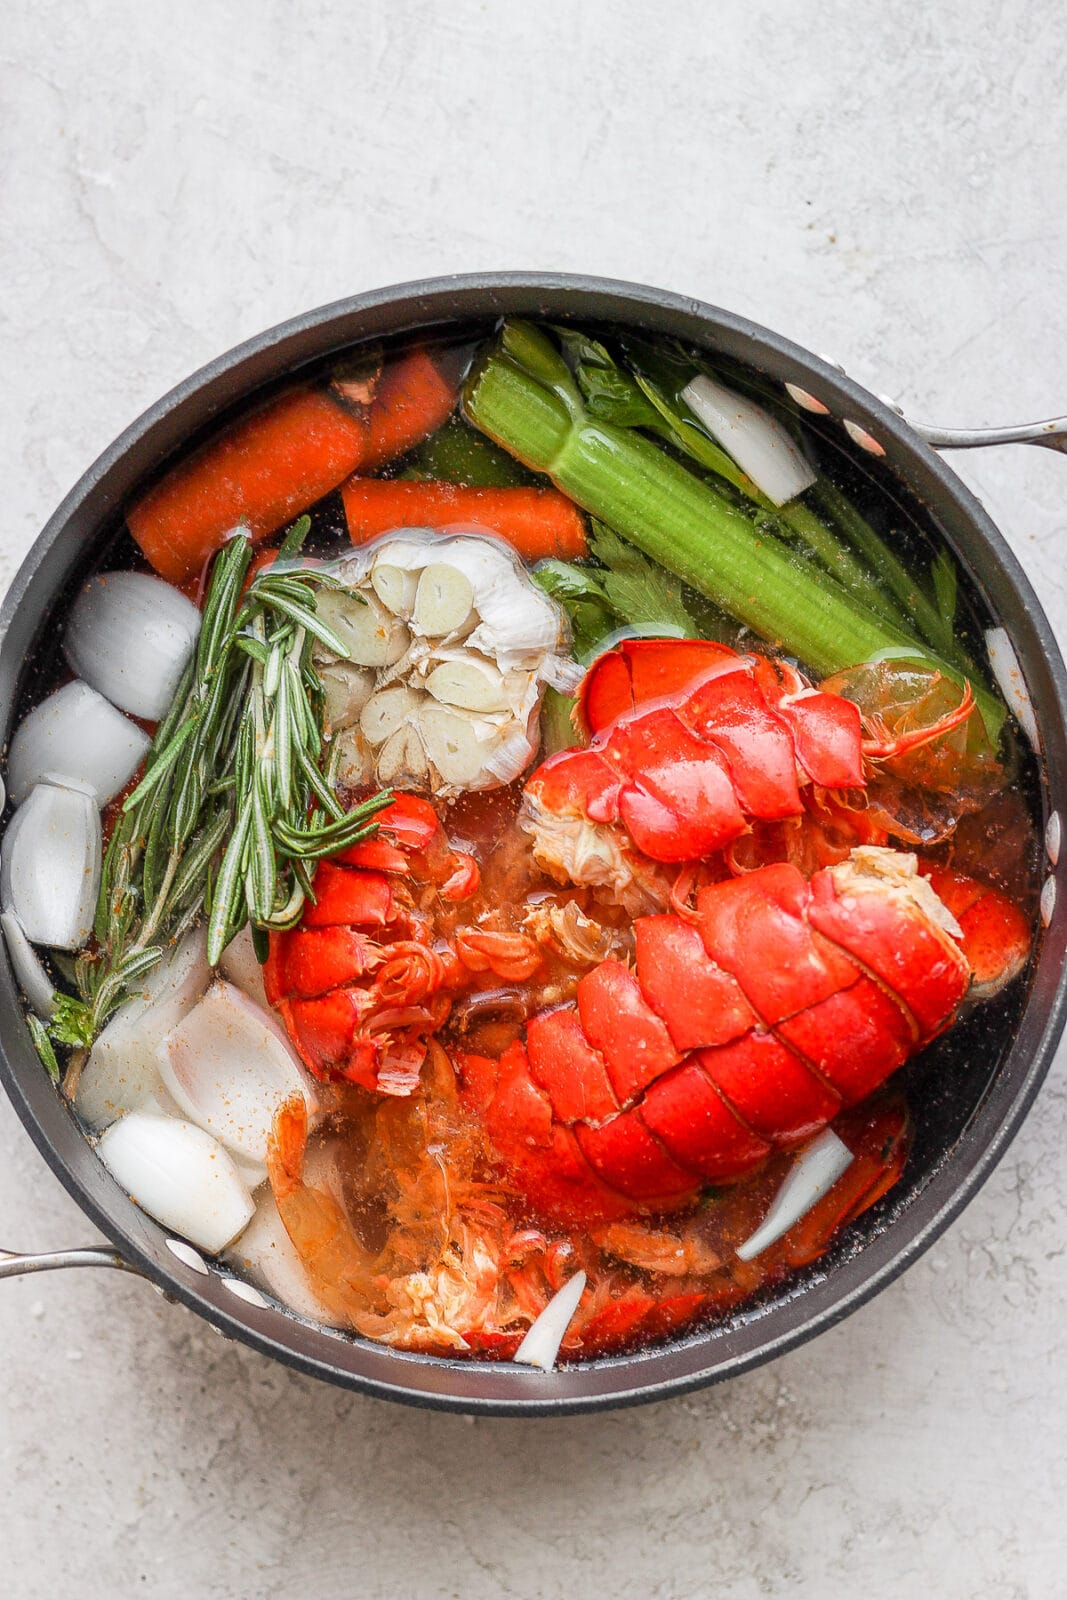 Dutch oven with seafood stock ingredients plus water.